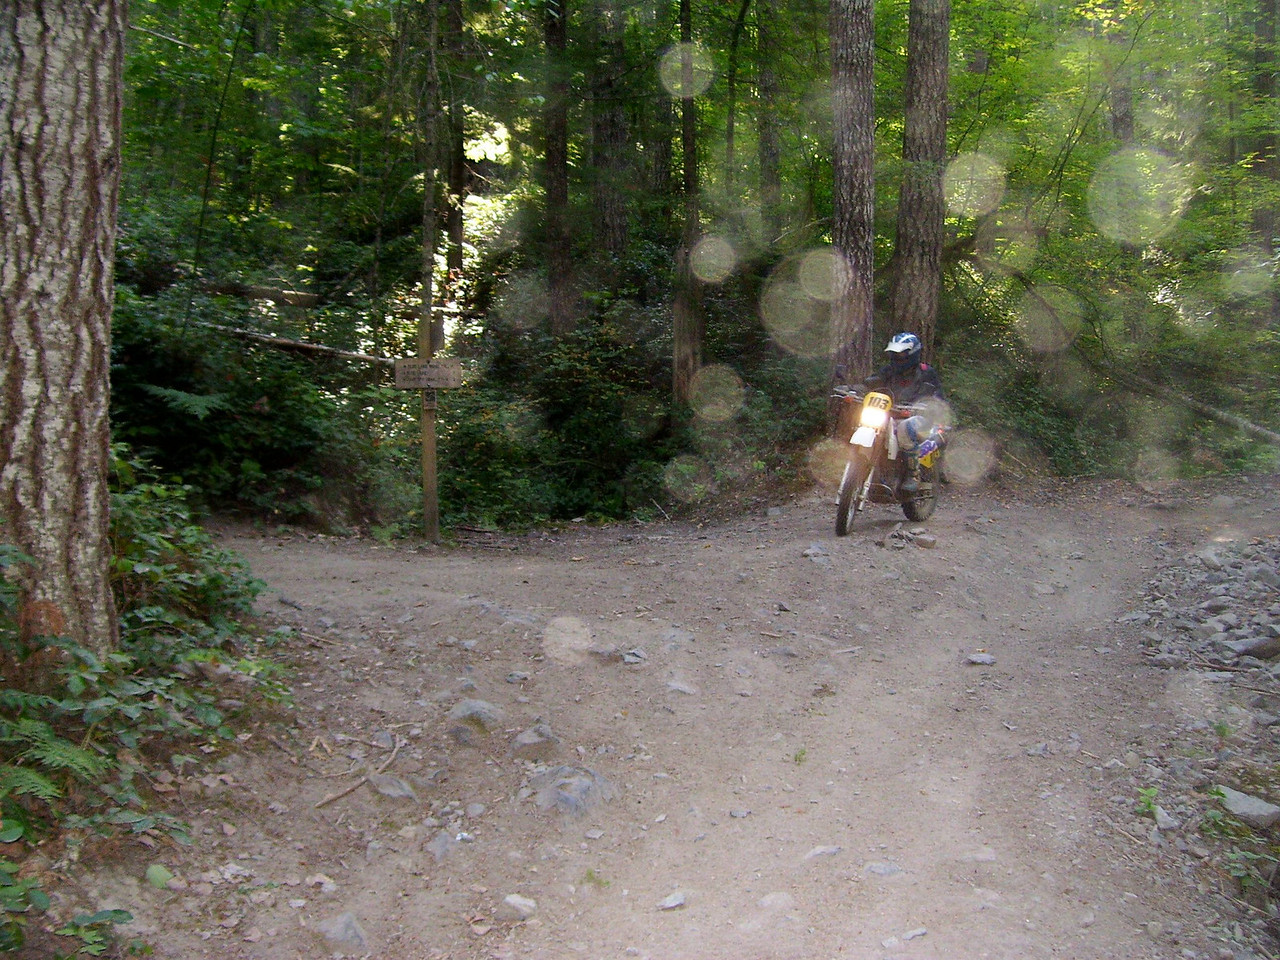 Dust on the camera lens. 270 and the Blue lake trail start